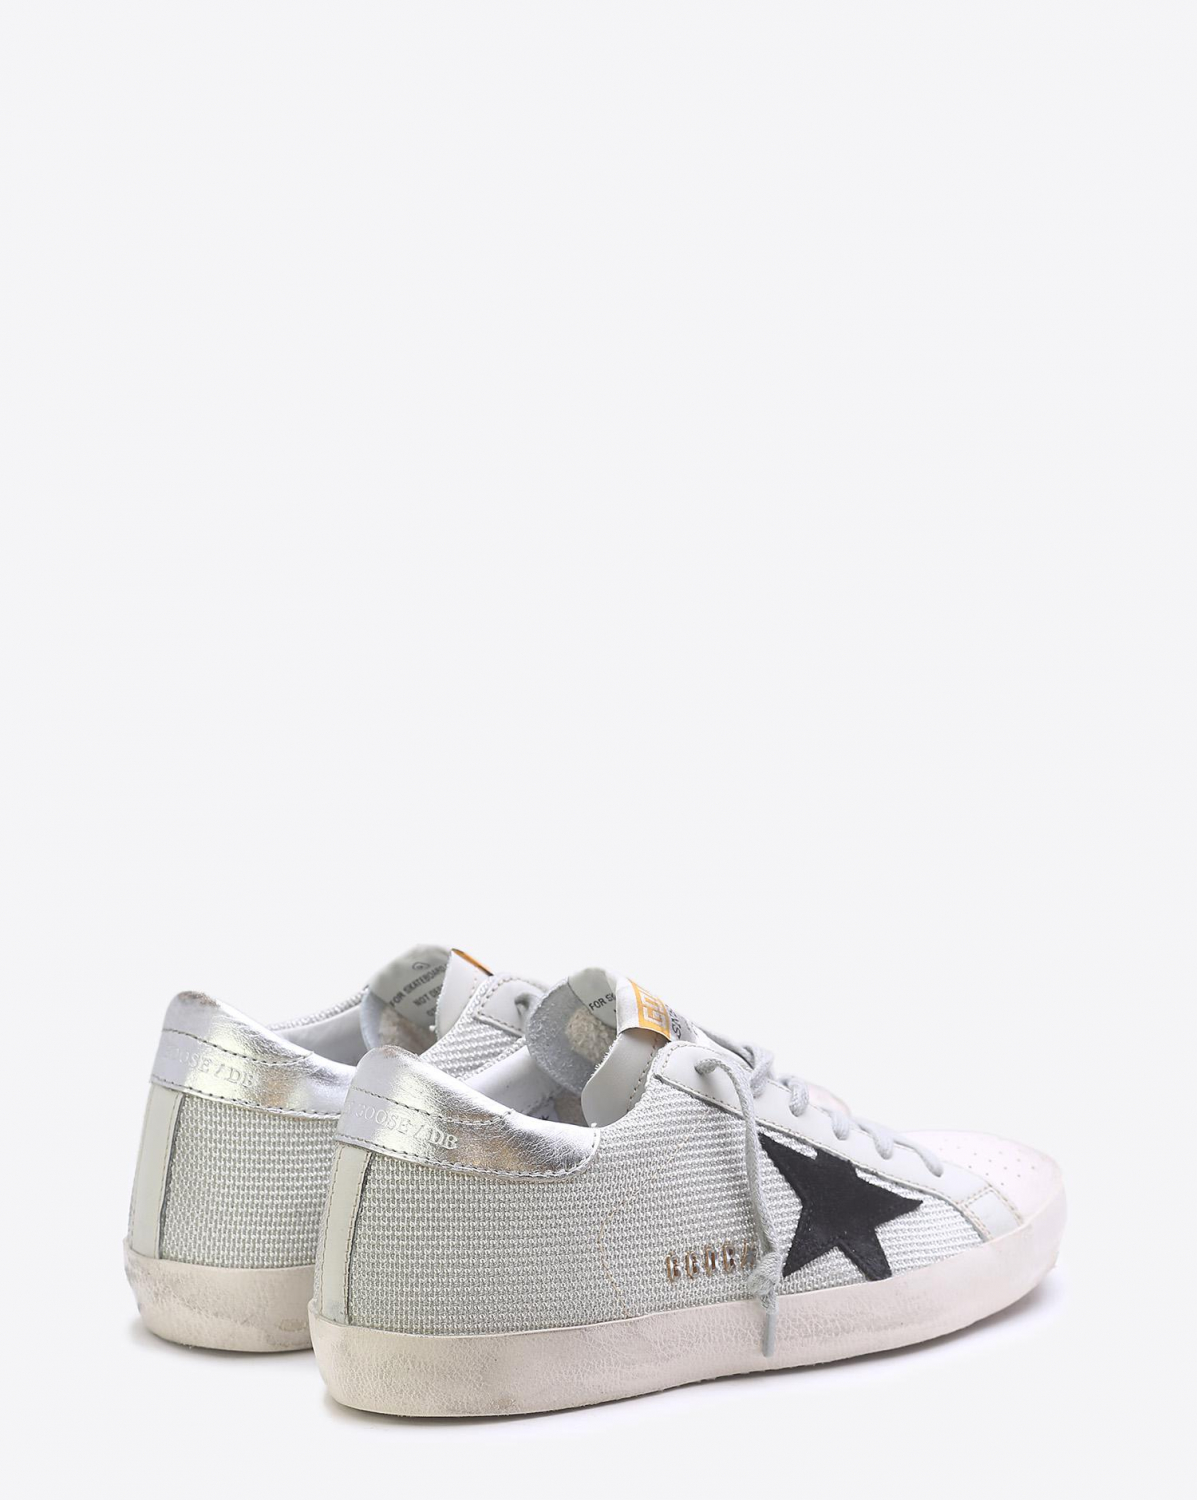 Golden Goose Woman Pré-Collection Sneakers Superstar - White CordSilver Lurex